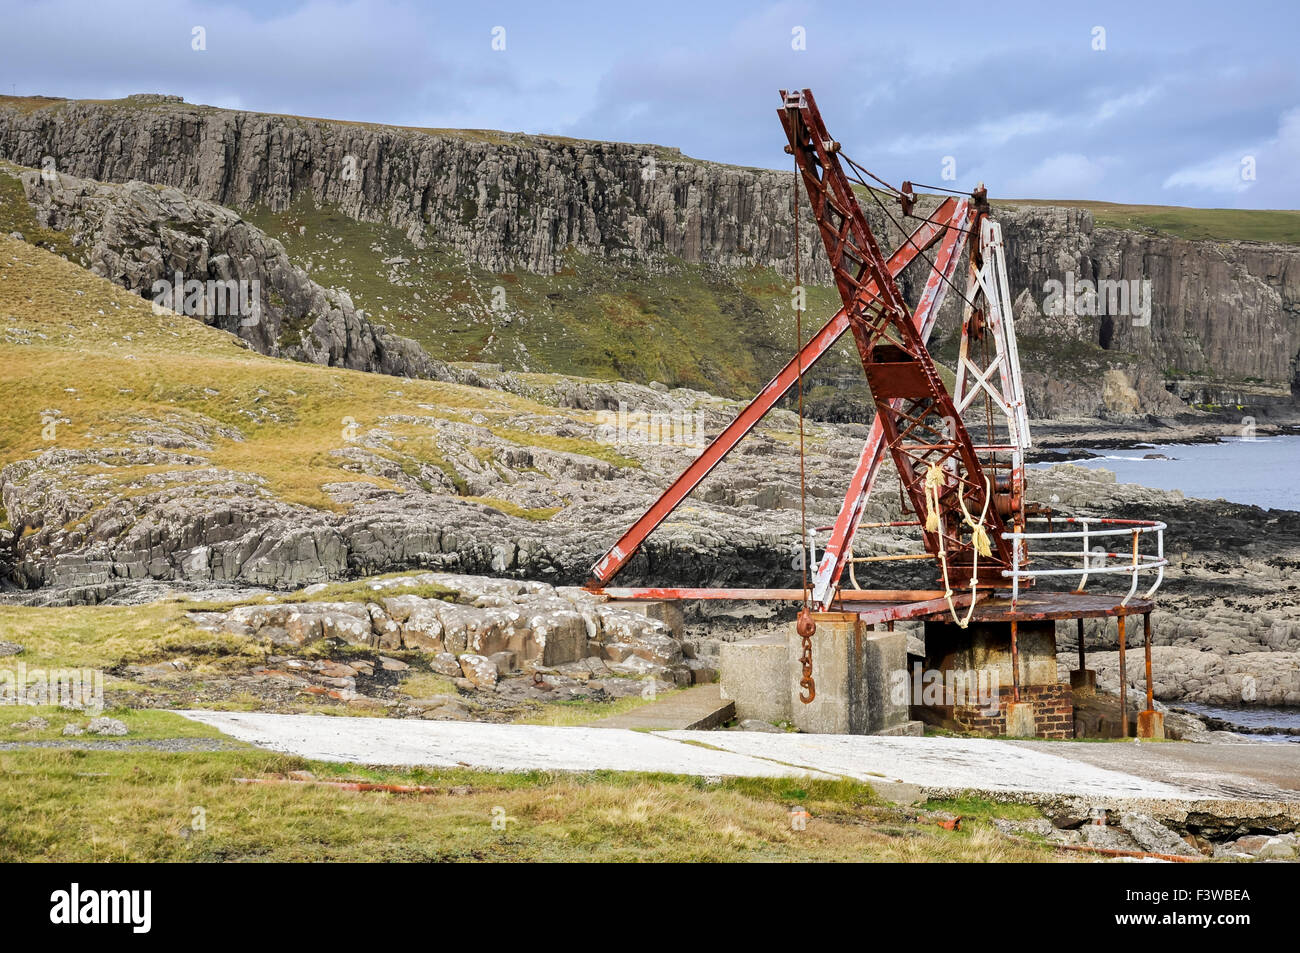 Old landing stage and crane at Neist Point on the Isle of Skye, Scotland. Stock Photo